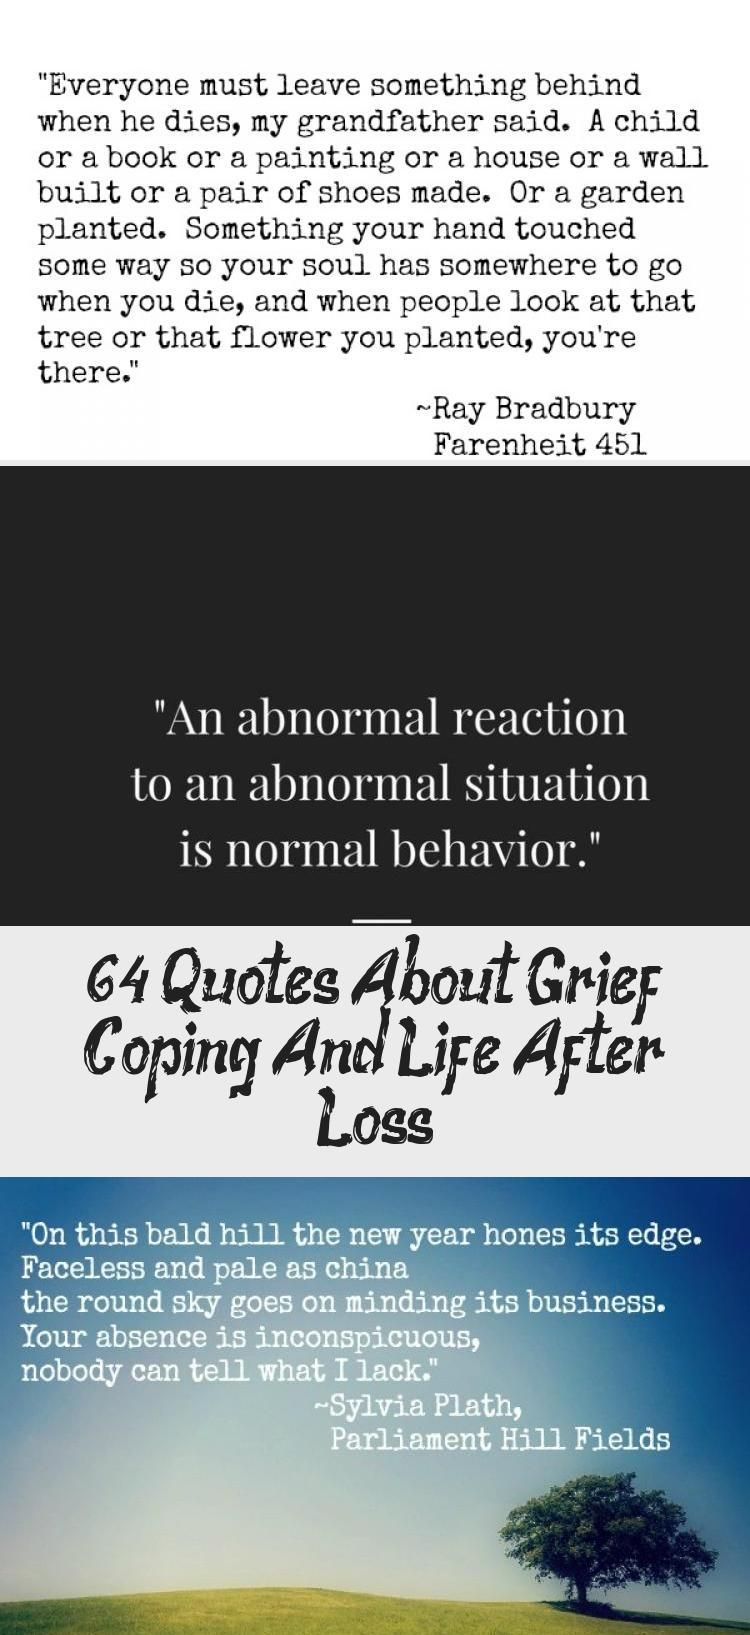 64 Quotes About Grief Coping And Life After Loss Grief Quotes Grief Quote Quotes